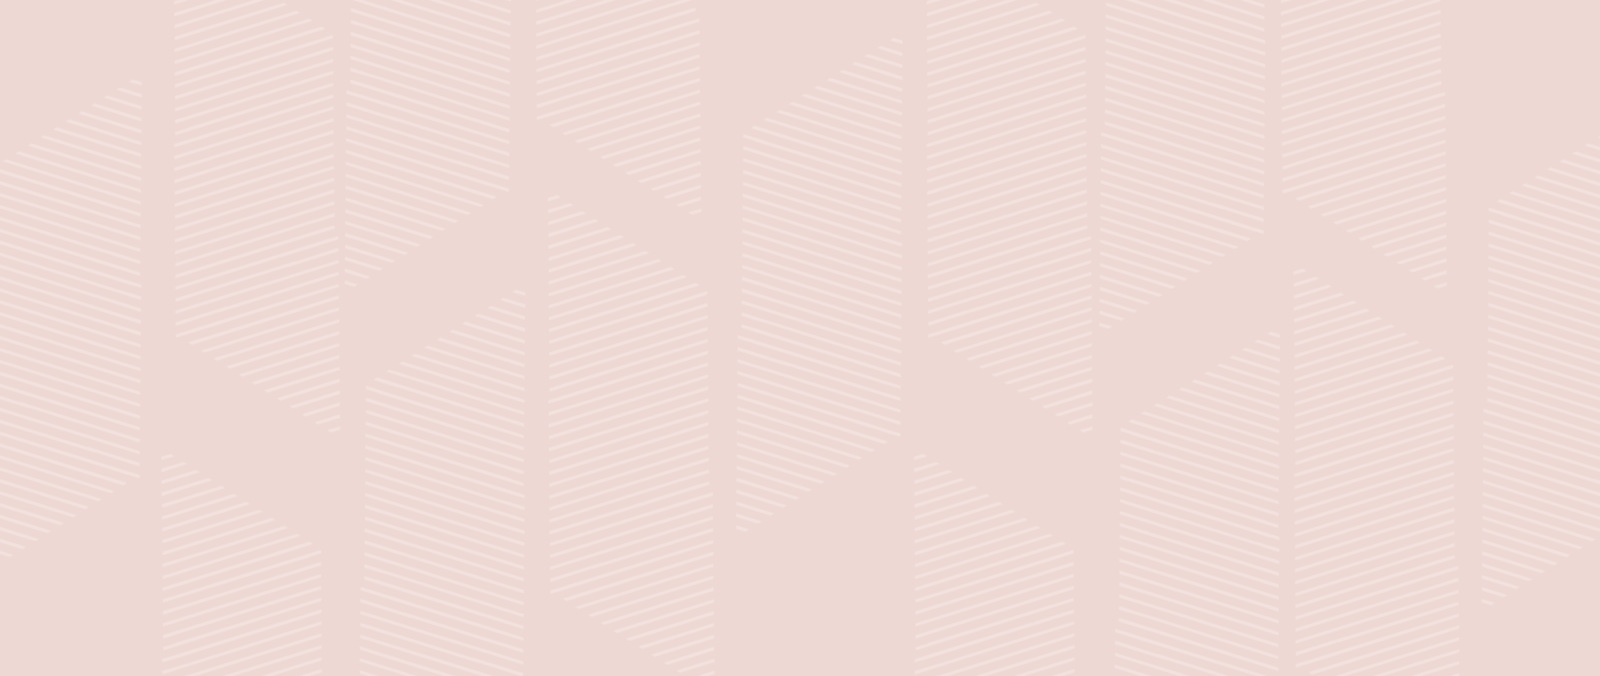 BACKGROUND_STRIPES TLED_PINK BACKGROUND